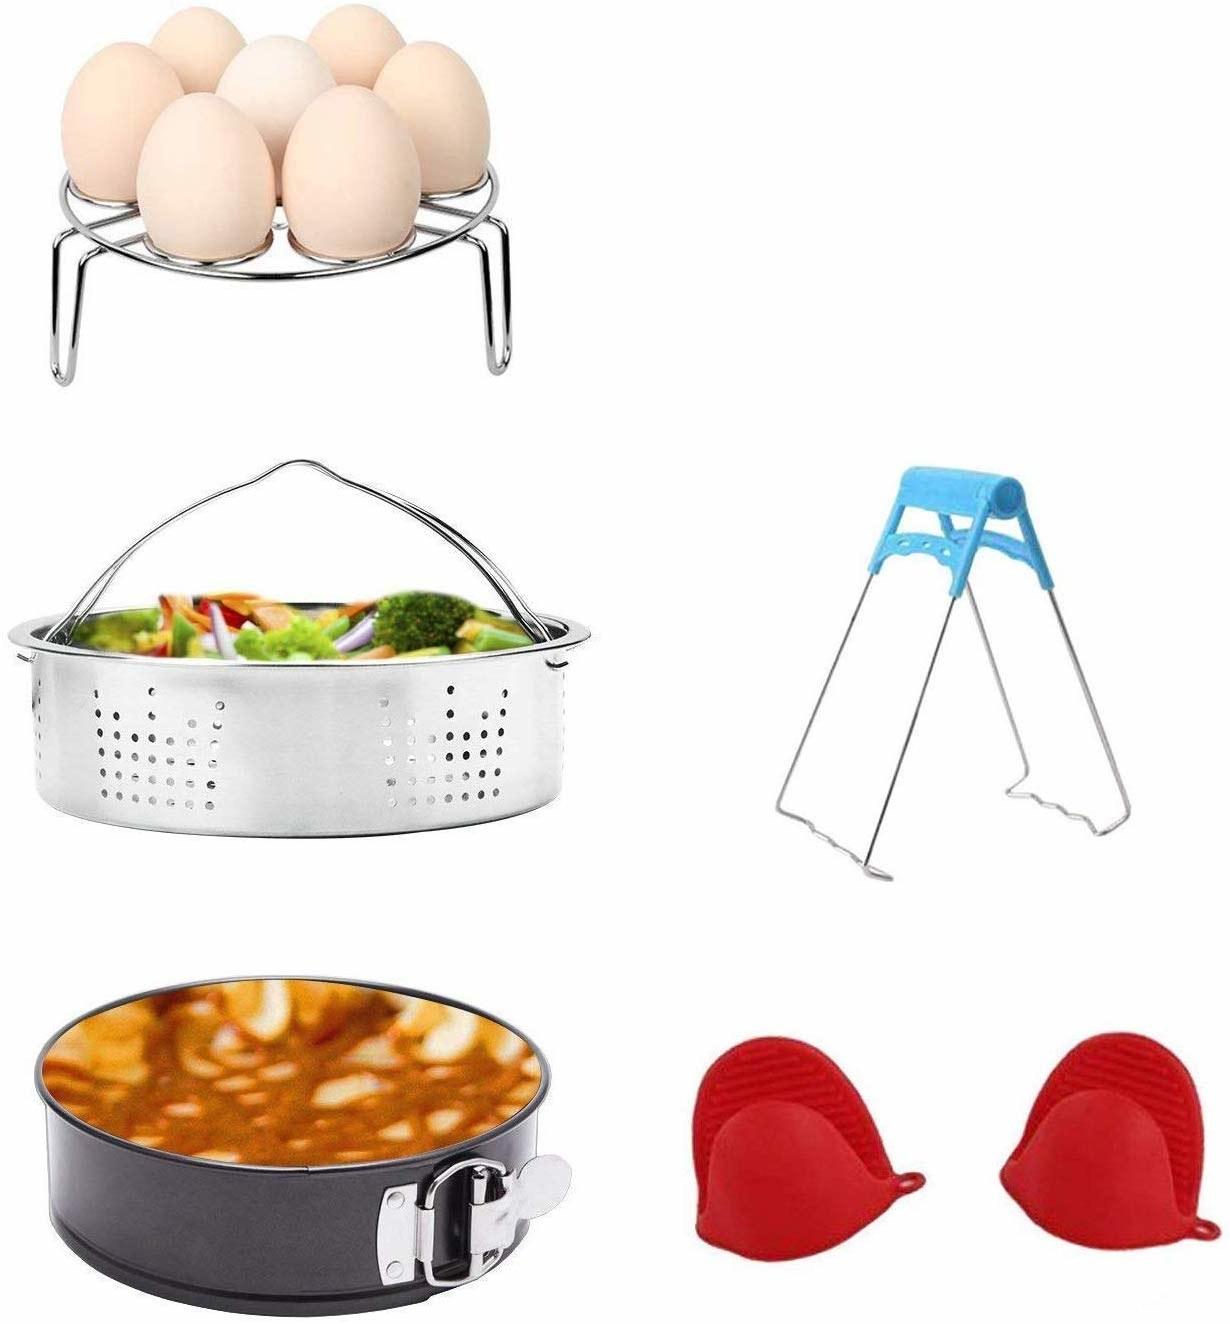 An egg cooking rack, A steaming basket, A springform pan, A set of tongs, and a set of silicone mitts on a plain background